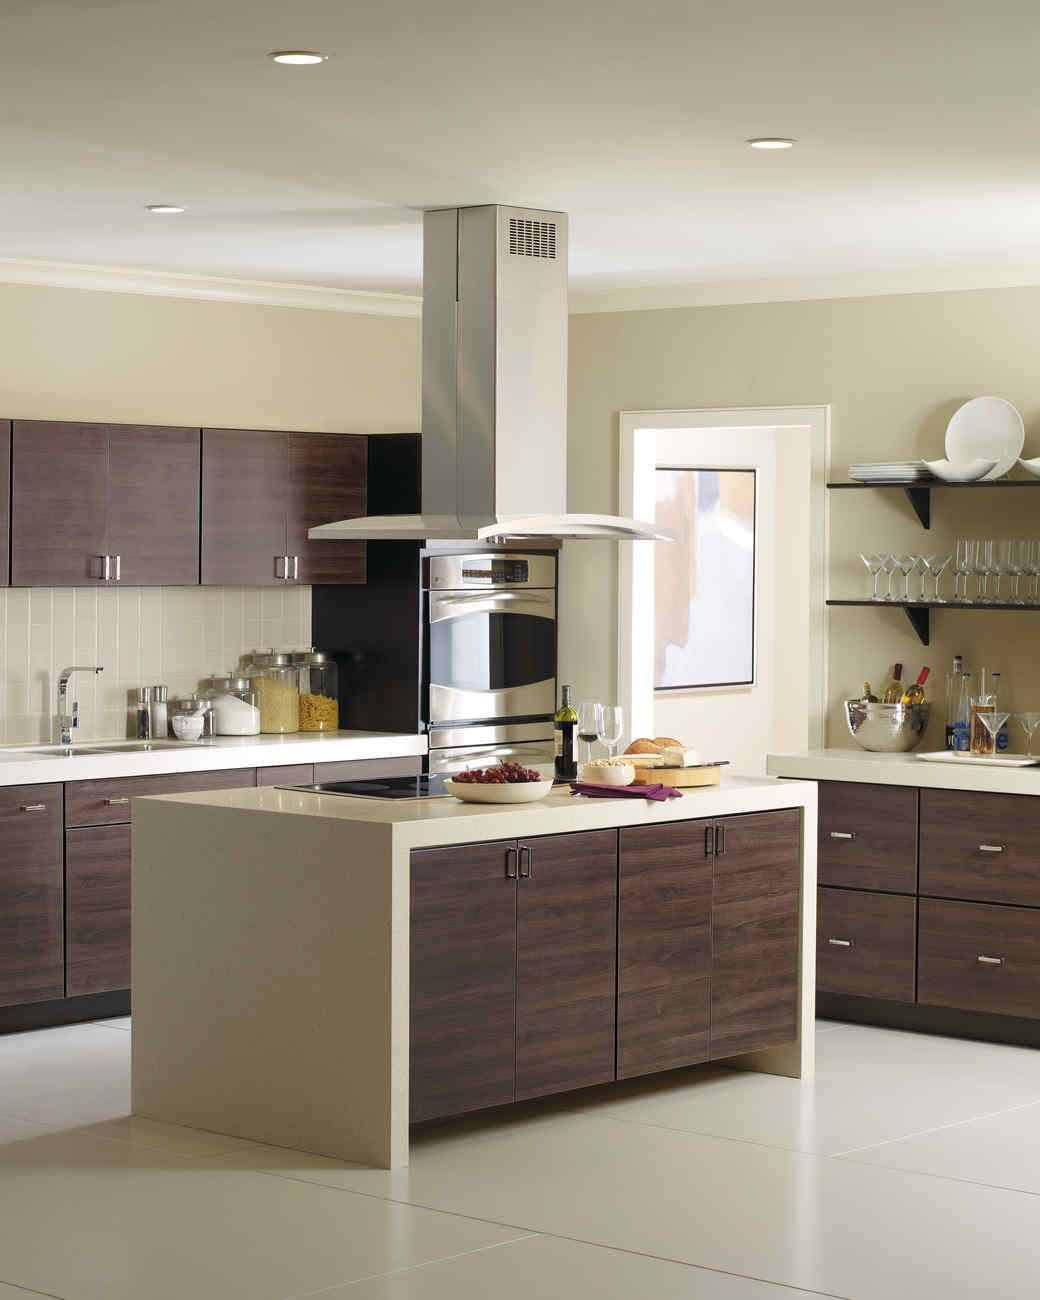 Martha Stewart Kitchen Cabinets Home Depot: How To Pick Kitchen Paint Colors